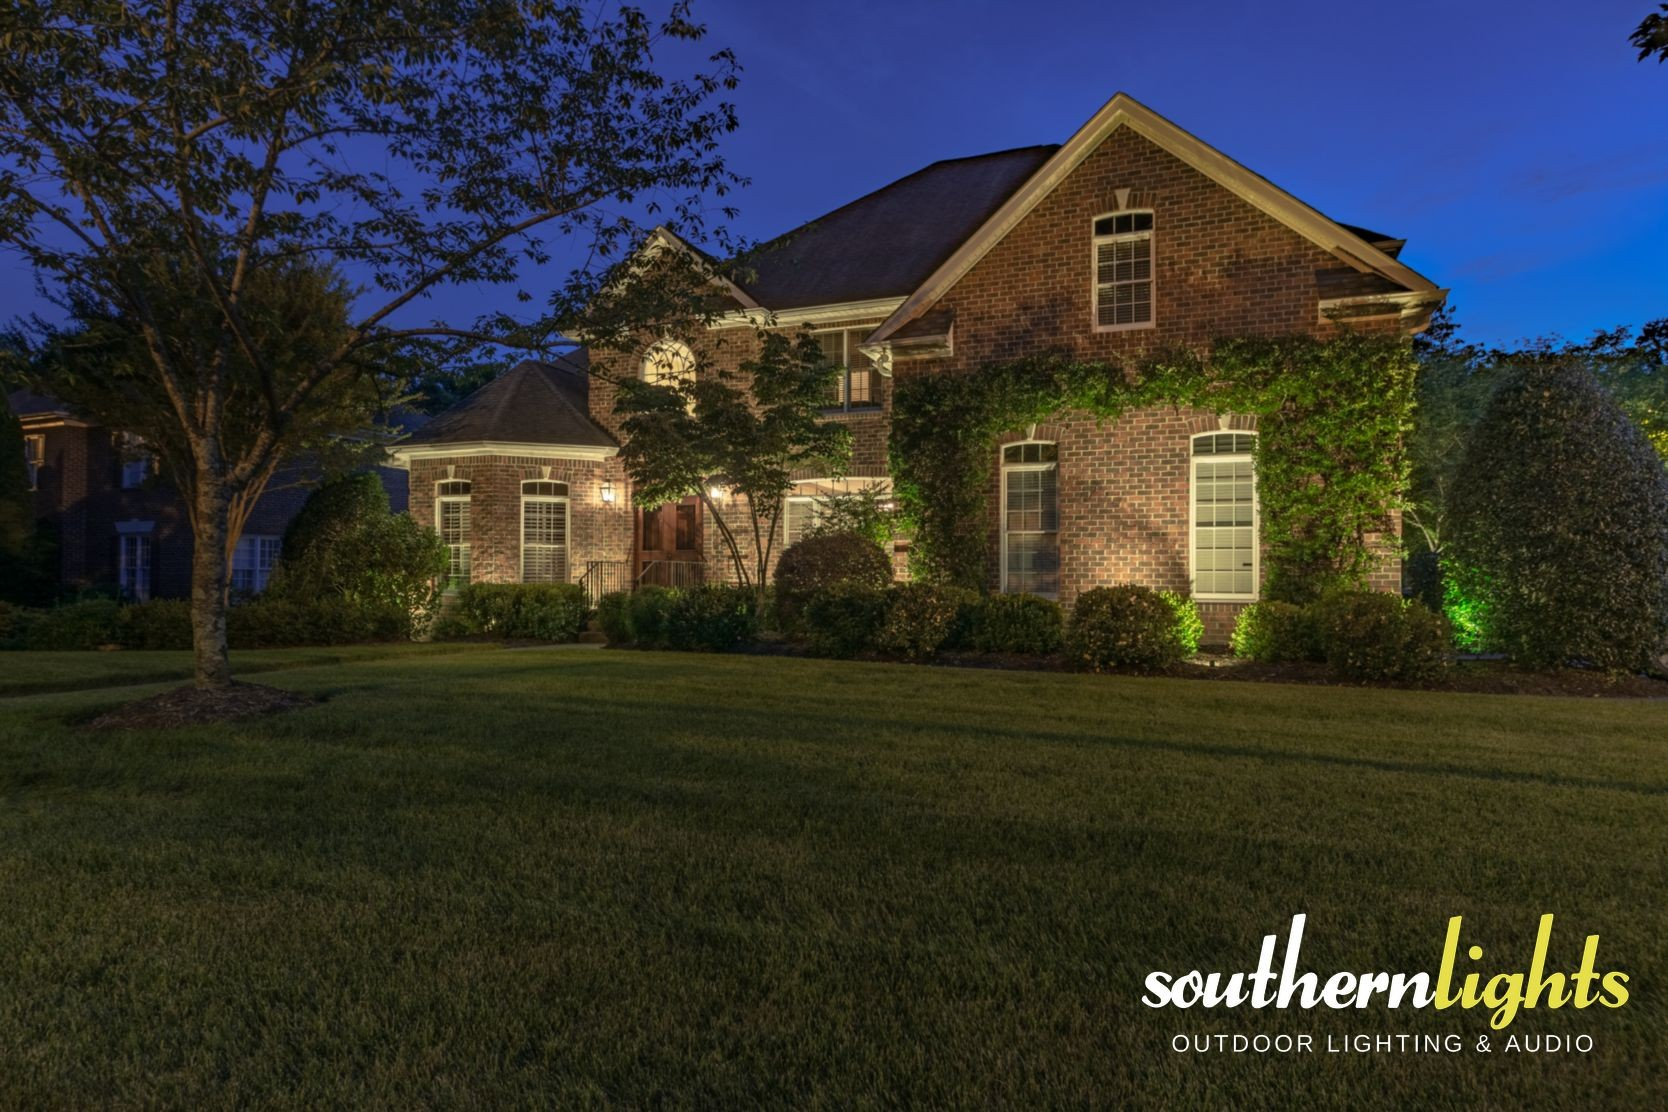 landscape lighting creations in